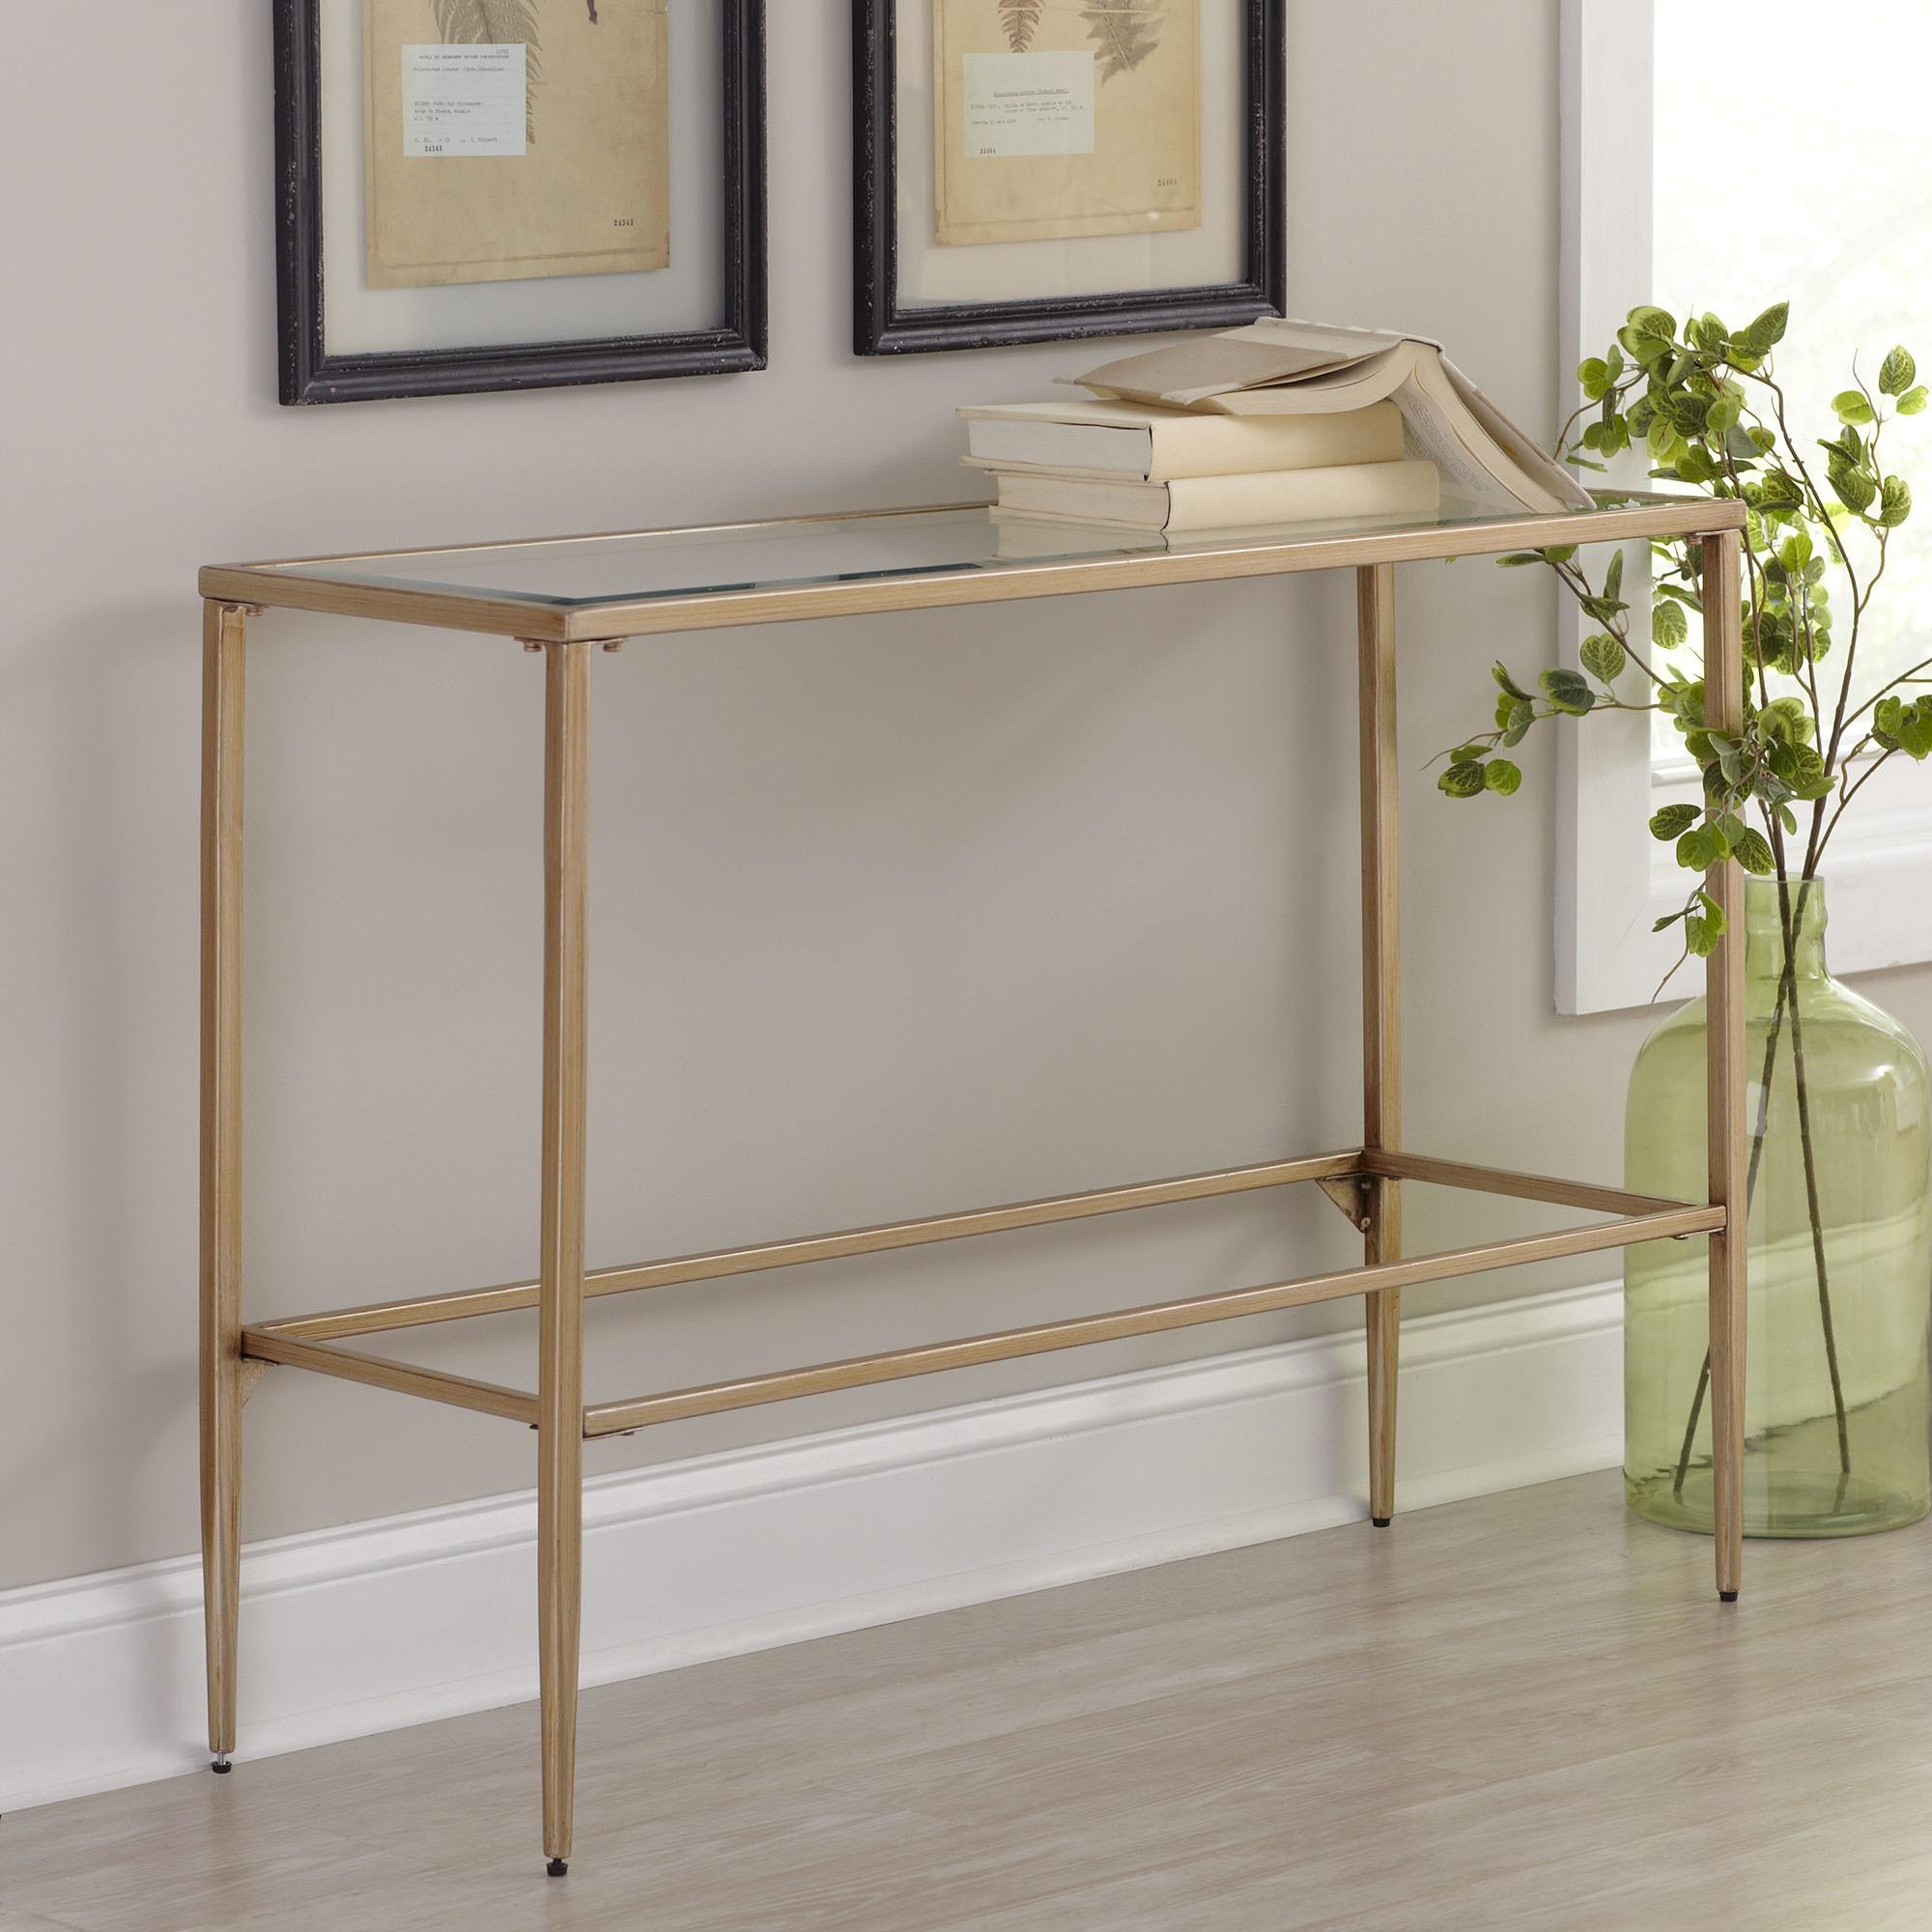 Gold Sofa Table With Design Image 8673 | Kengire Intended For Gold Sofa Tables (View 4 of 20)